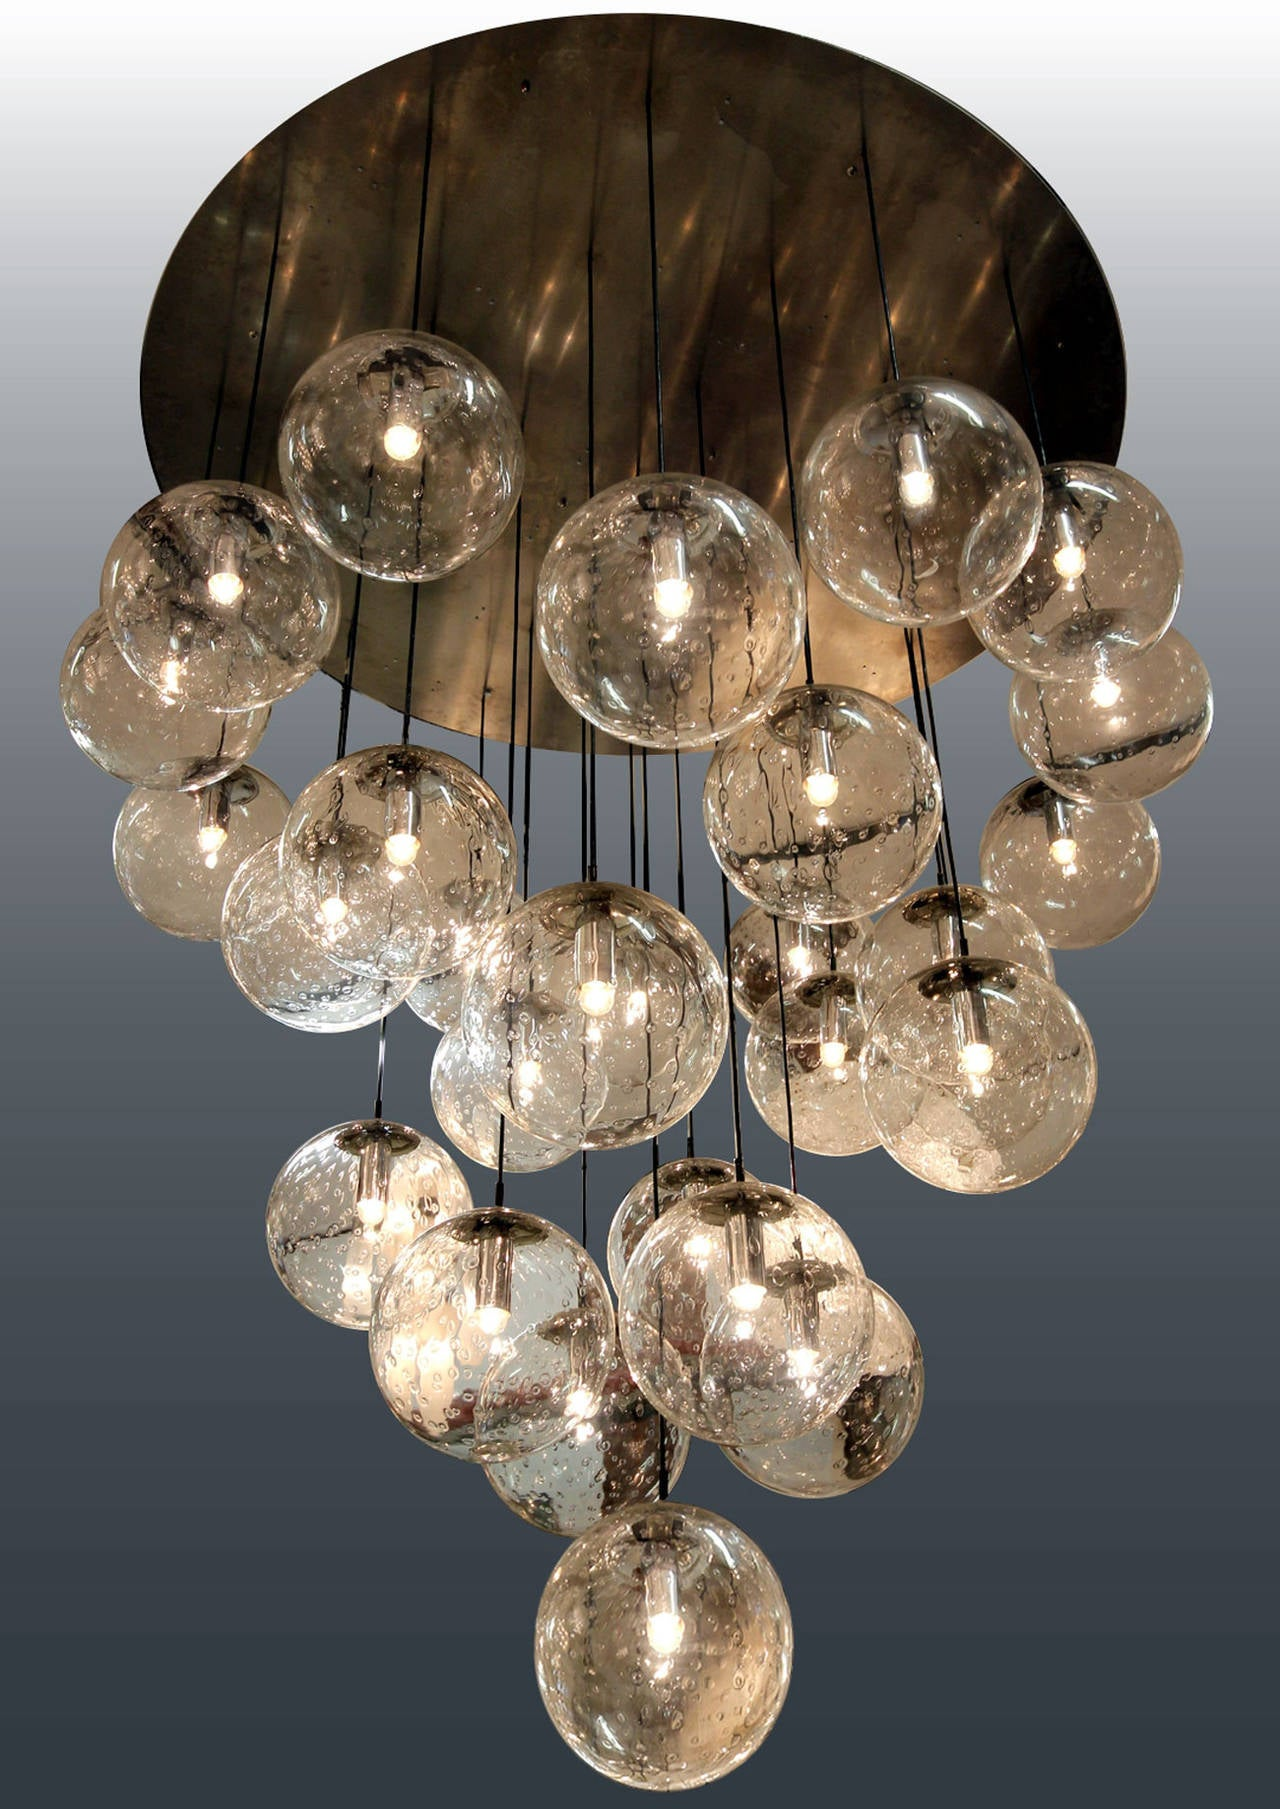 Amaizing 1970s huge glass balls chandelier by Raak Amsterdam at – Chandelier Glass Balls